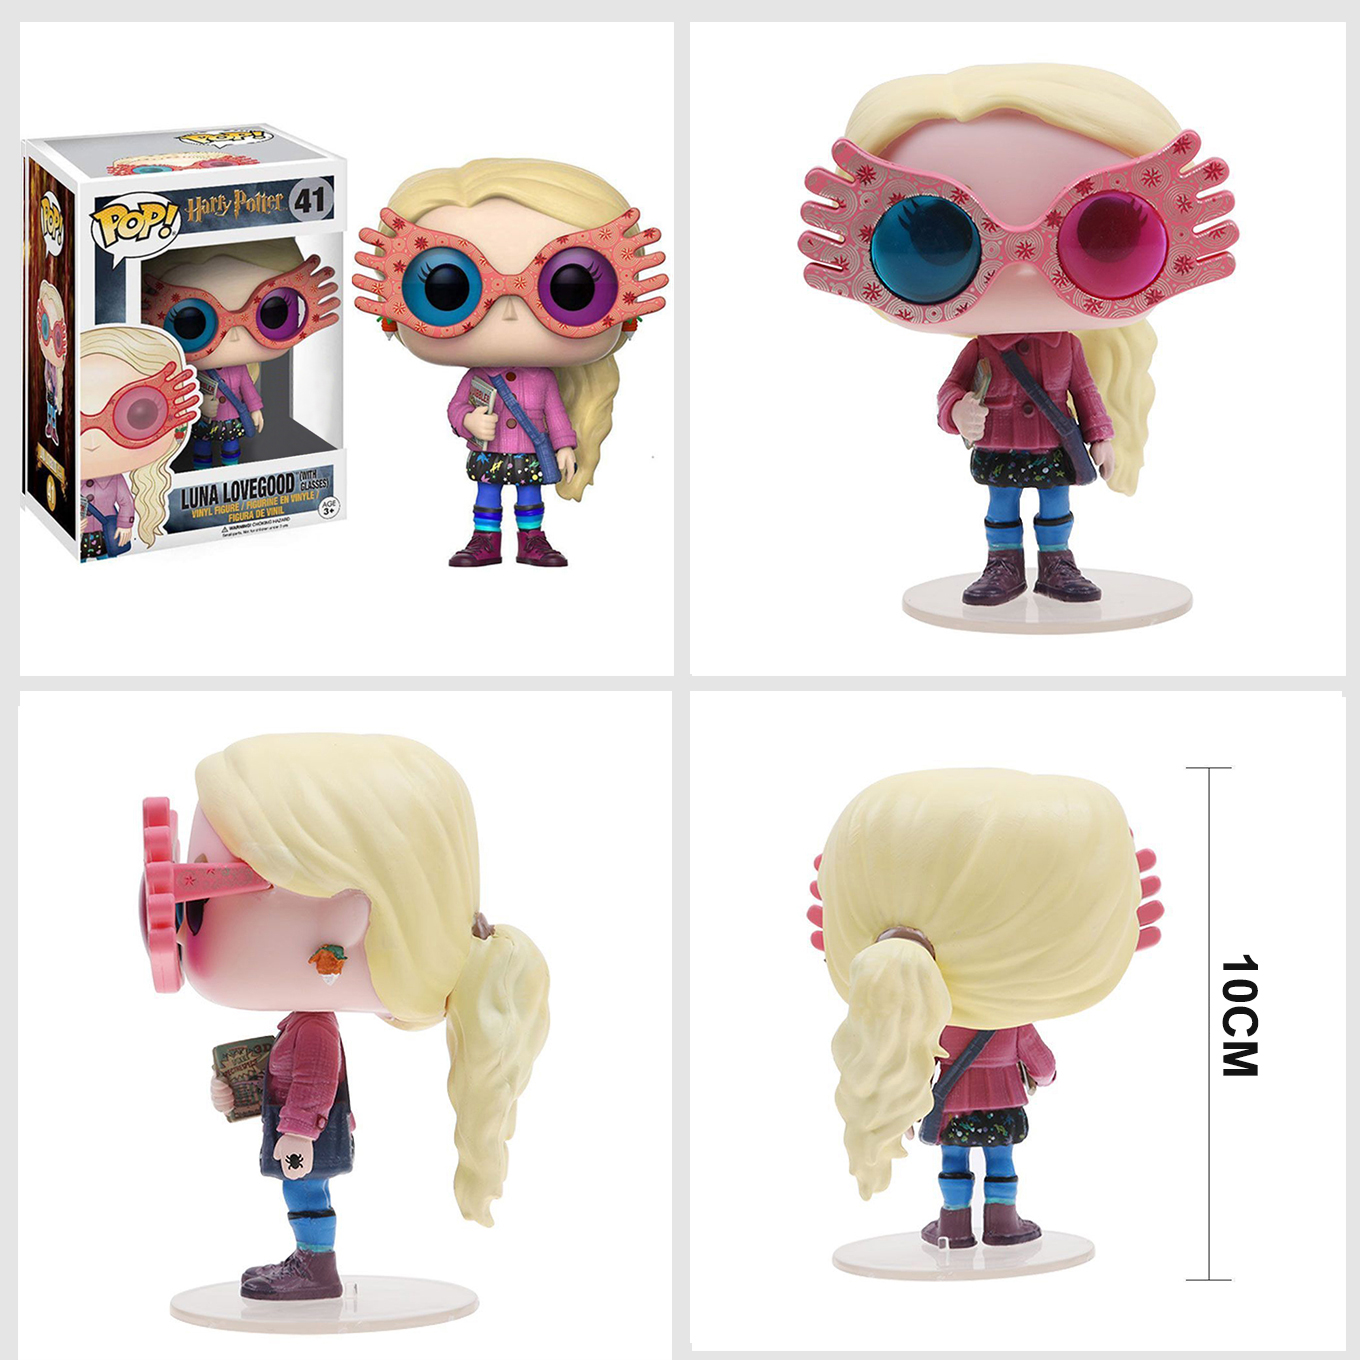 Junko Pop Harry Potter Luna Lovegood With Glasses 41